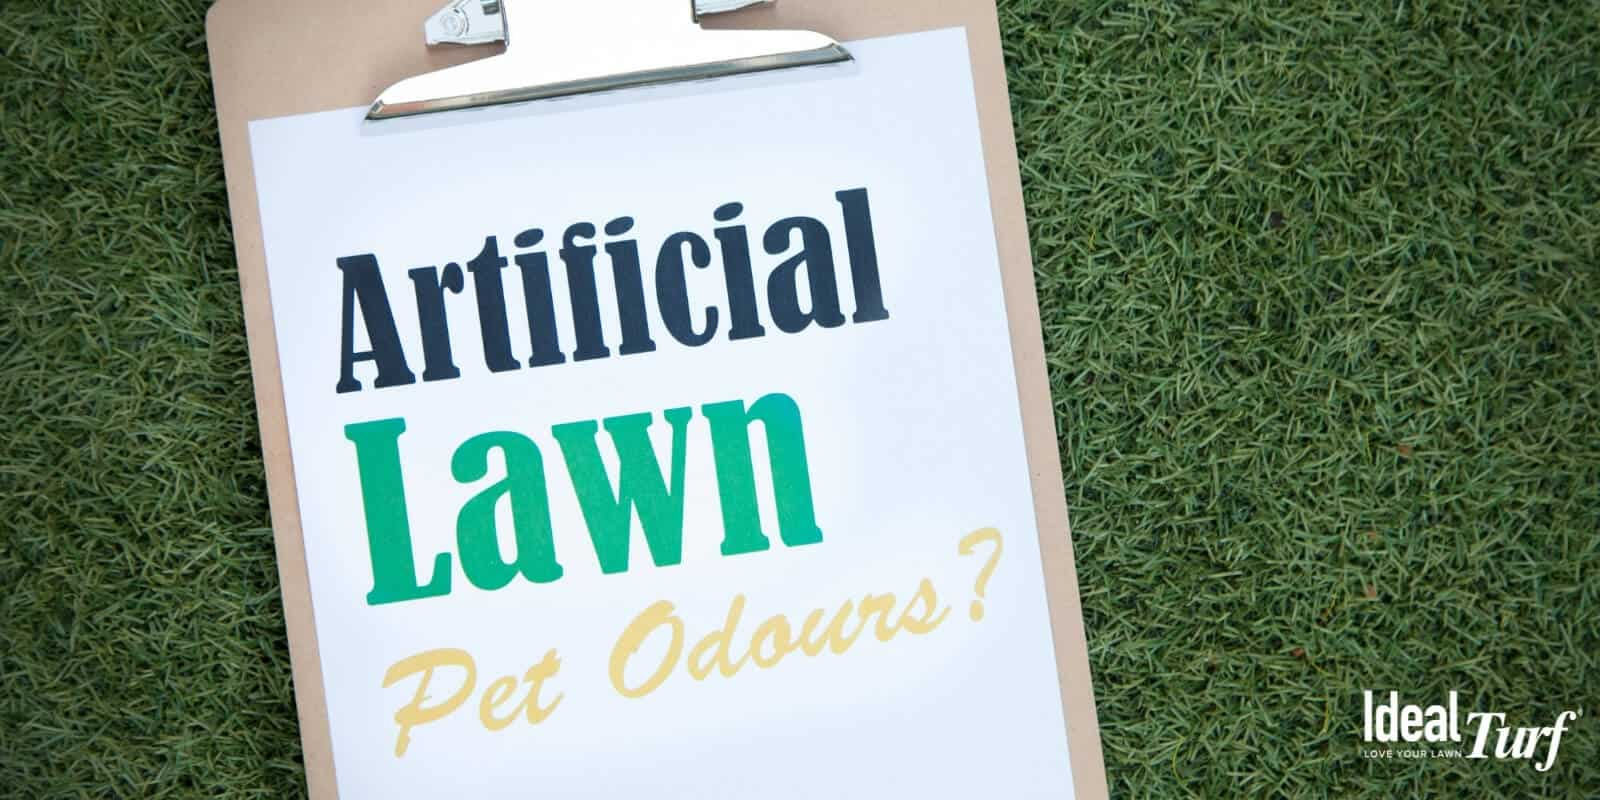 7. Remove Pet Odors from Turf